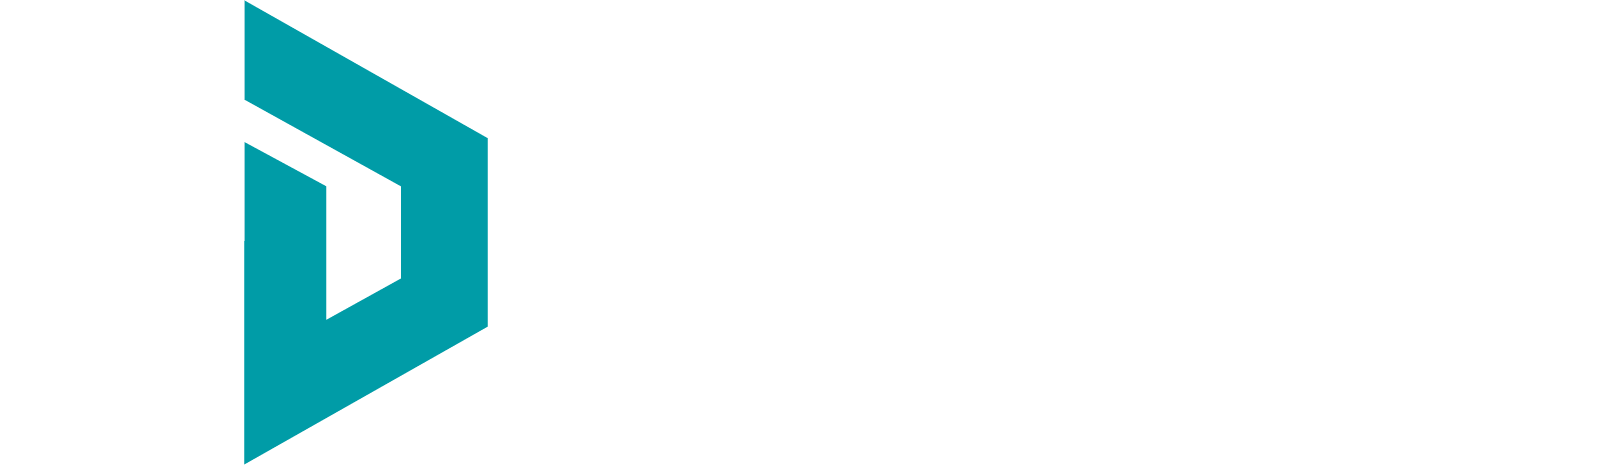 Fisher Dowell Building Surveyors